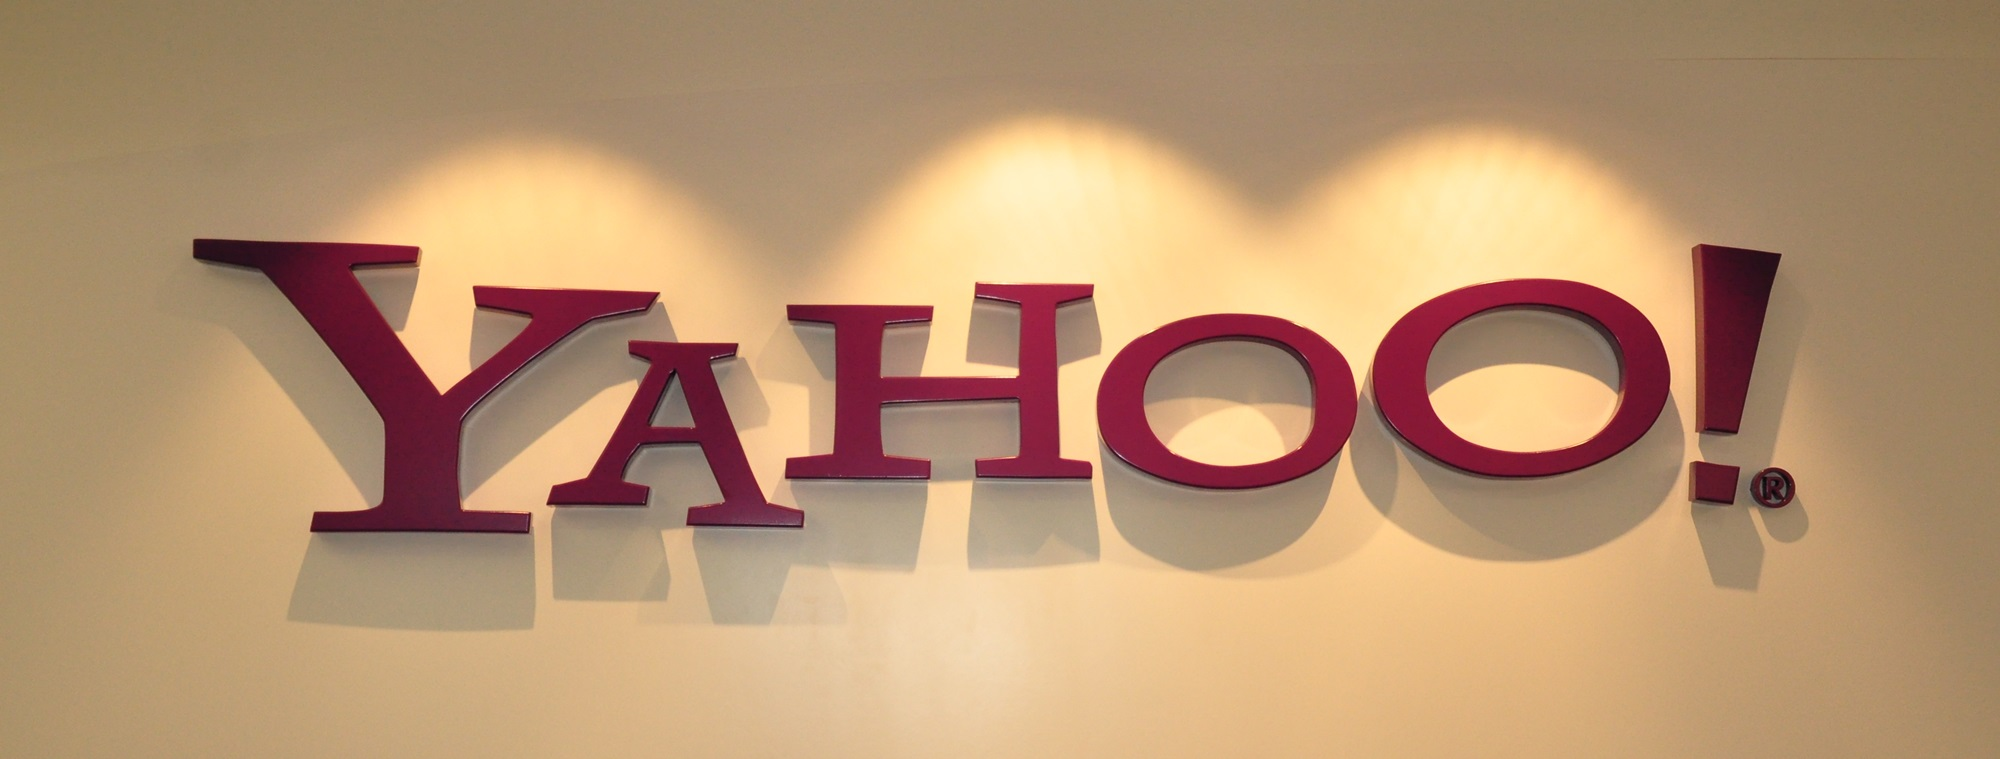 Yahoo Introduces Unified Mobile Search, Native Ad Marketplace